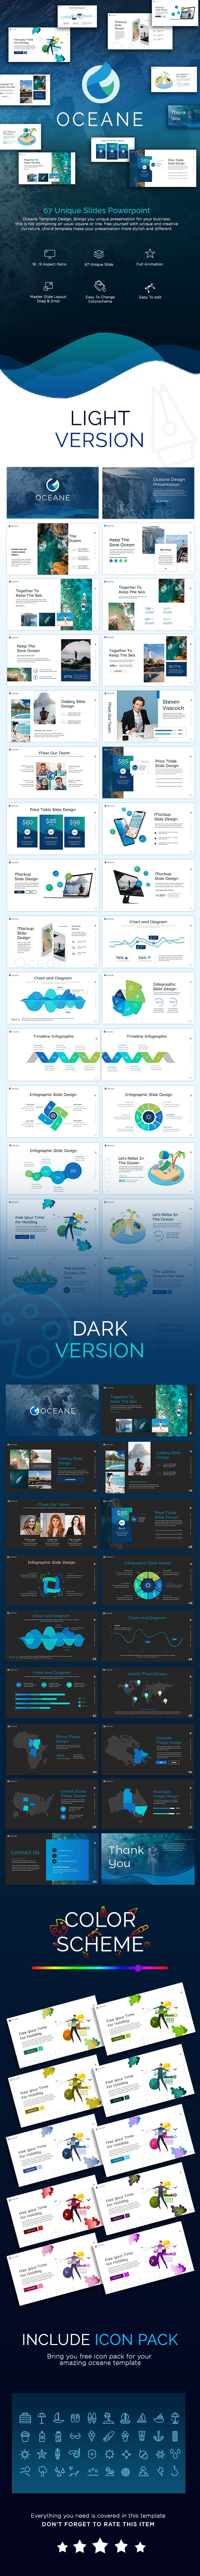 Oceane Presentation Template - Nature PowerPoint Templates